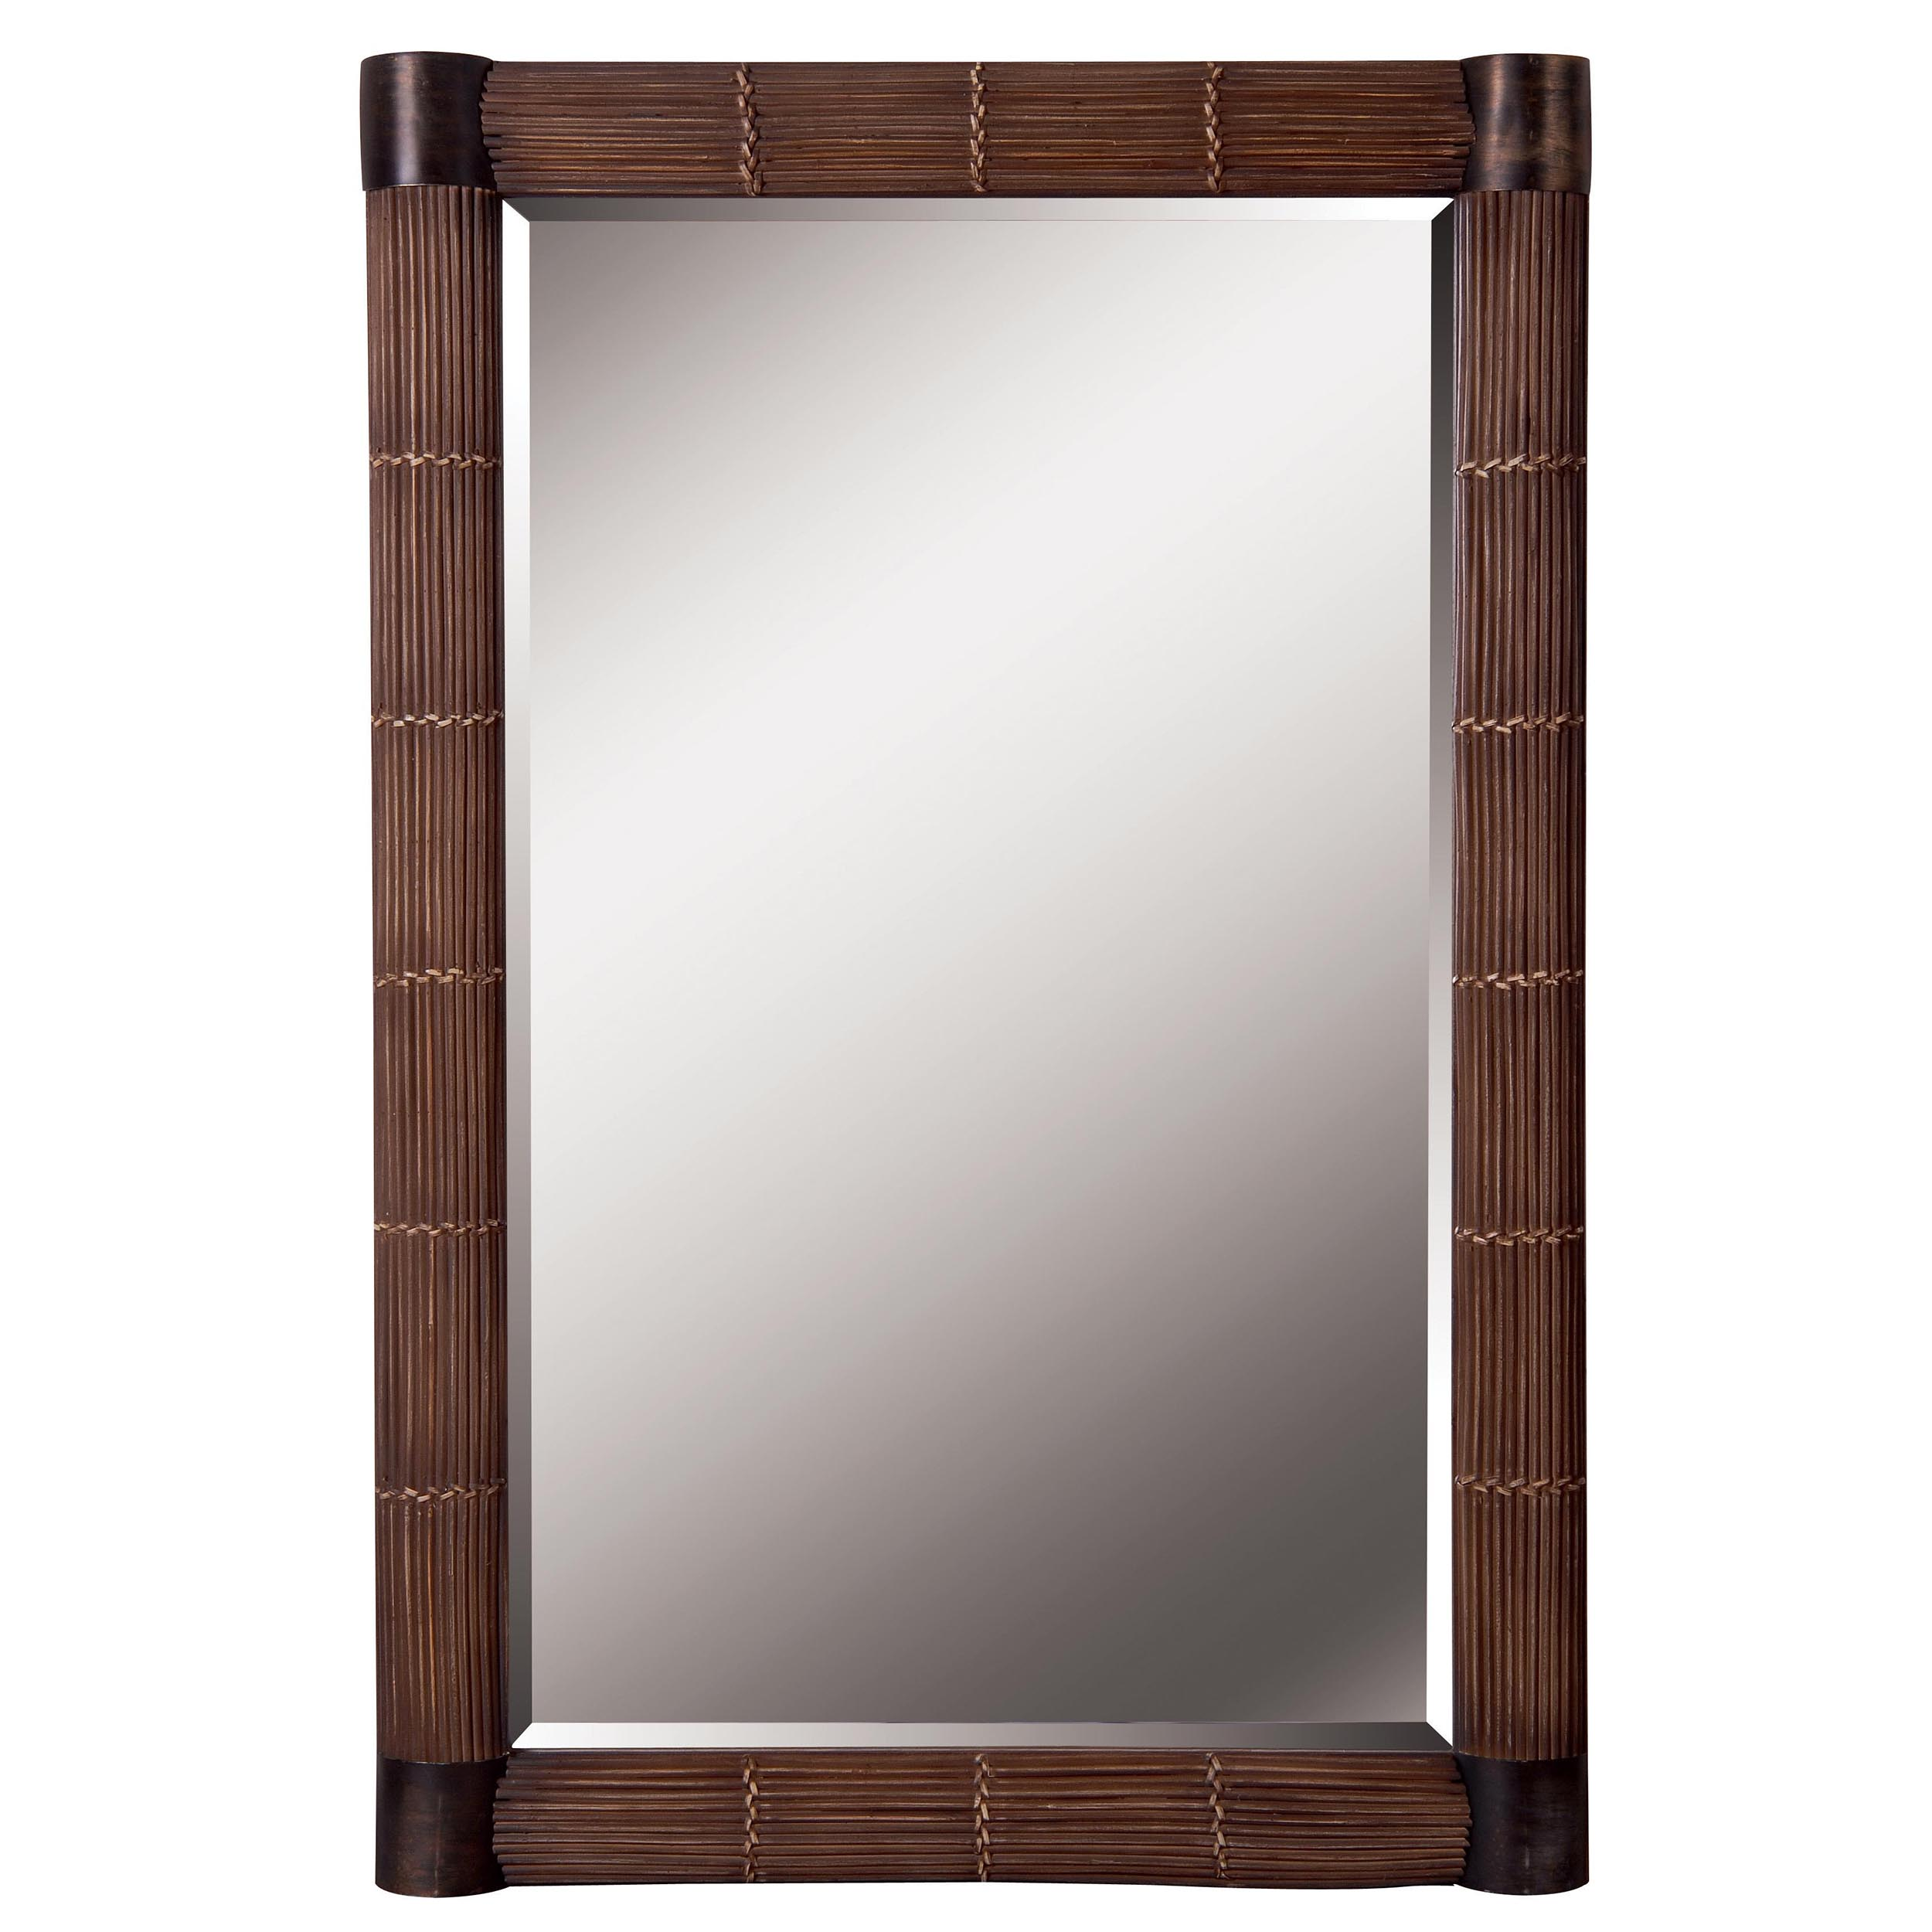 Overstock Mirrors: Overstock.com Shopping